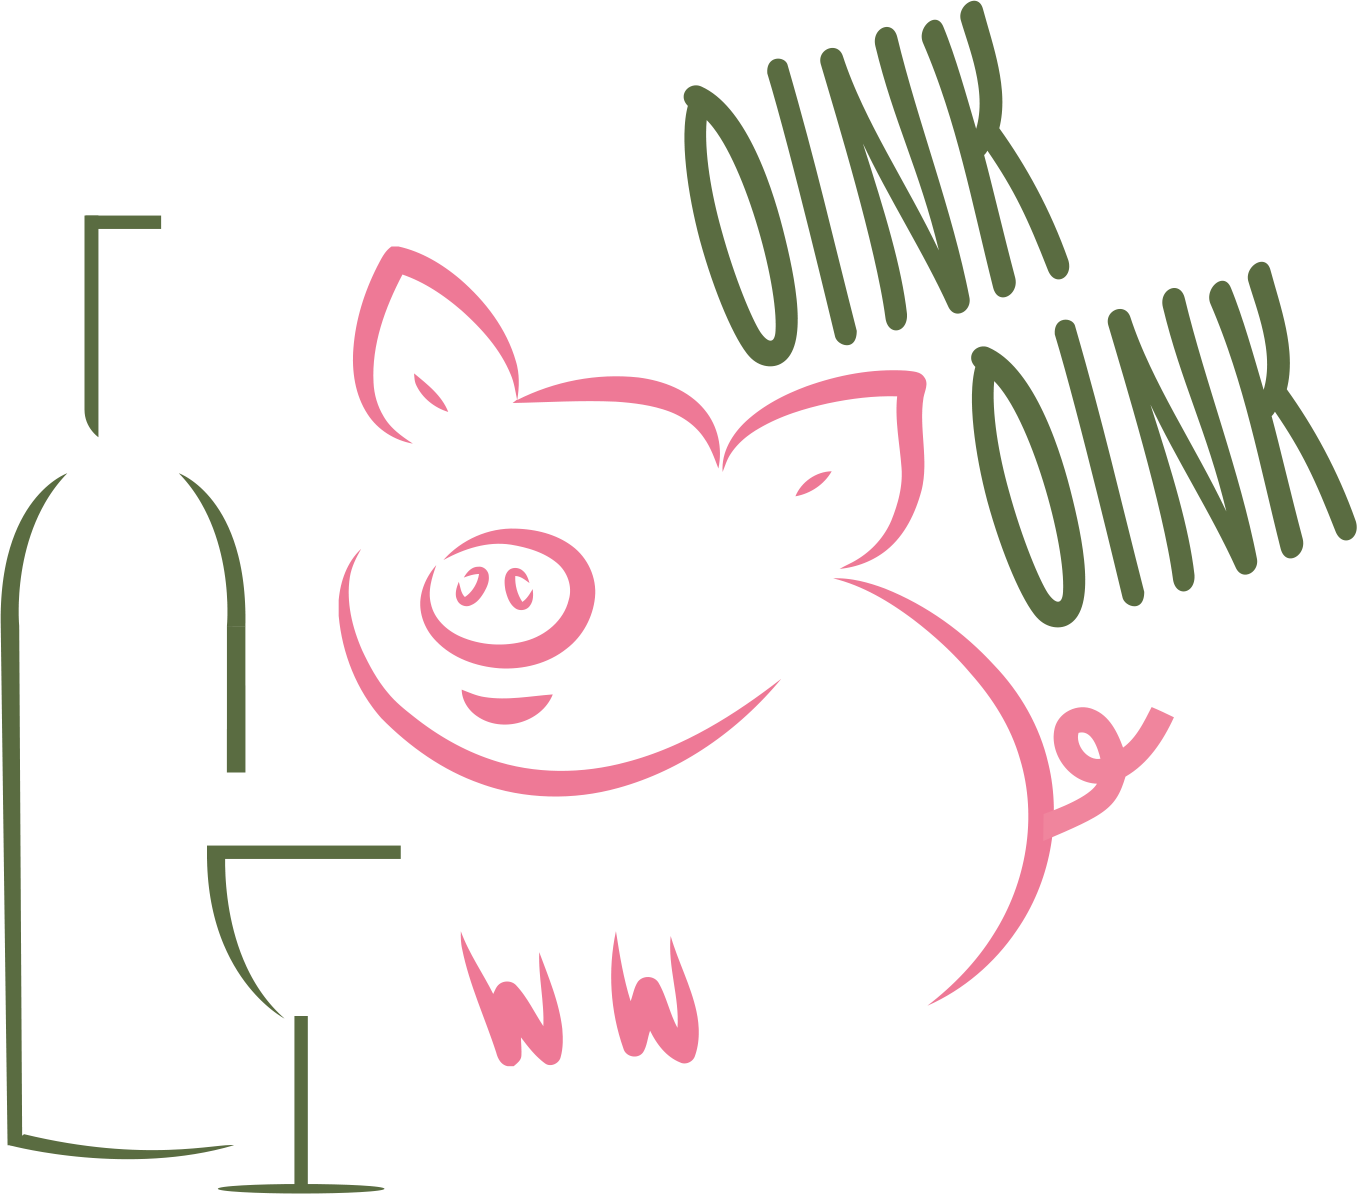 oink@home